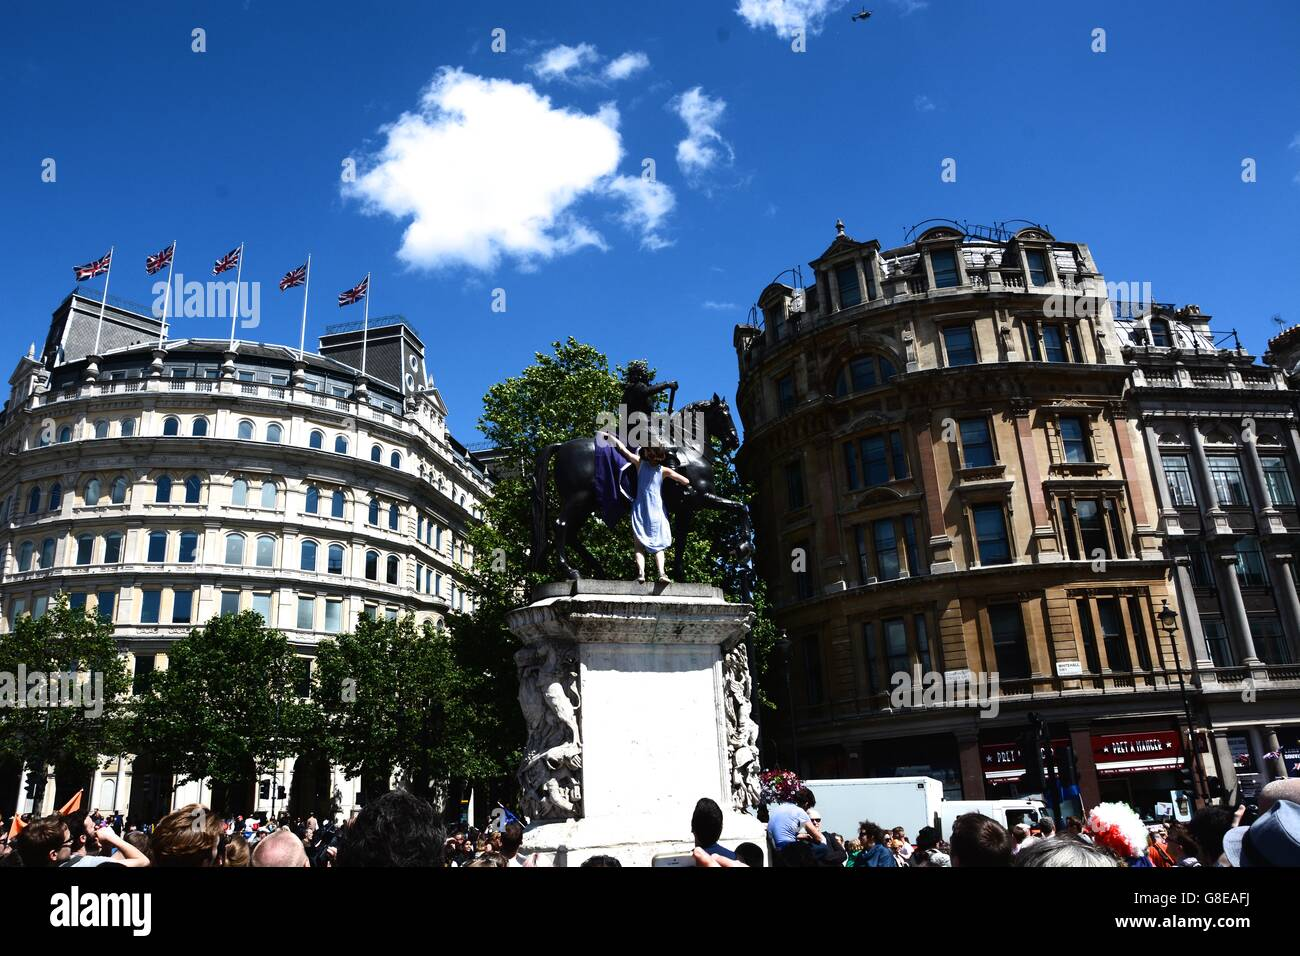 A young Pro-European demonstrator on the March for Europe climbs onto a statue in Trafalgar Square. - Stock Image